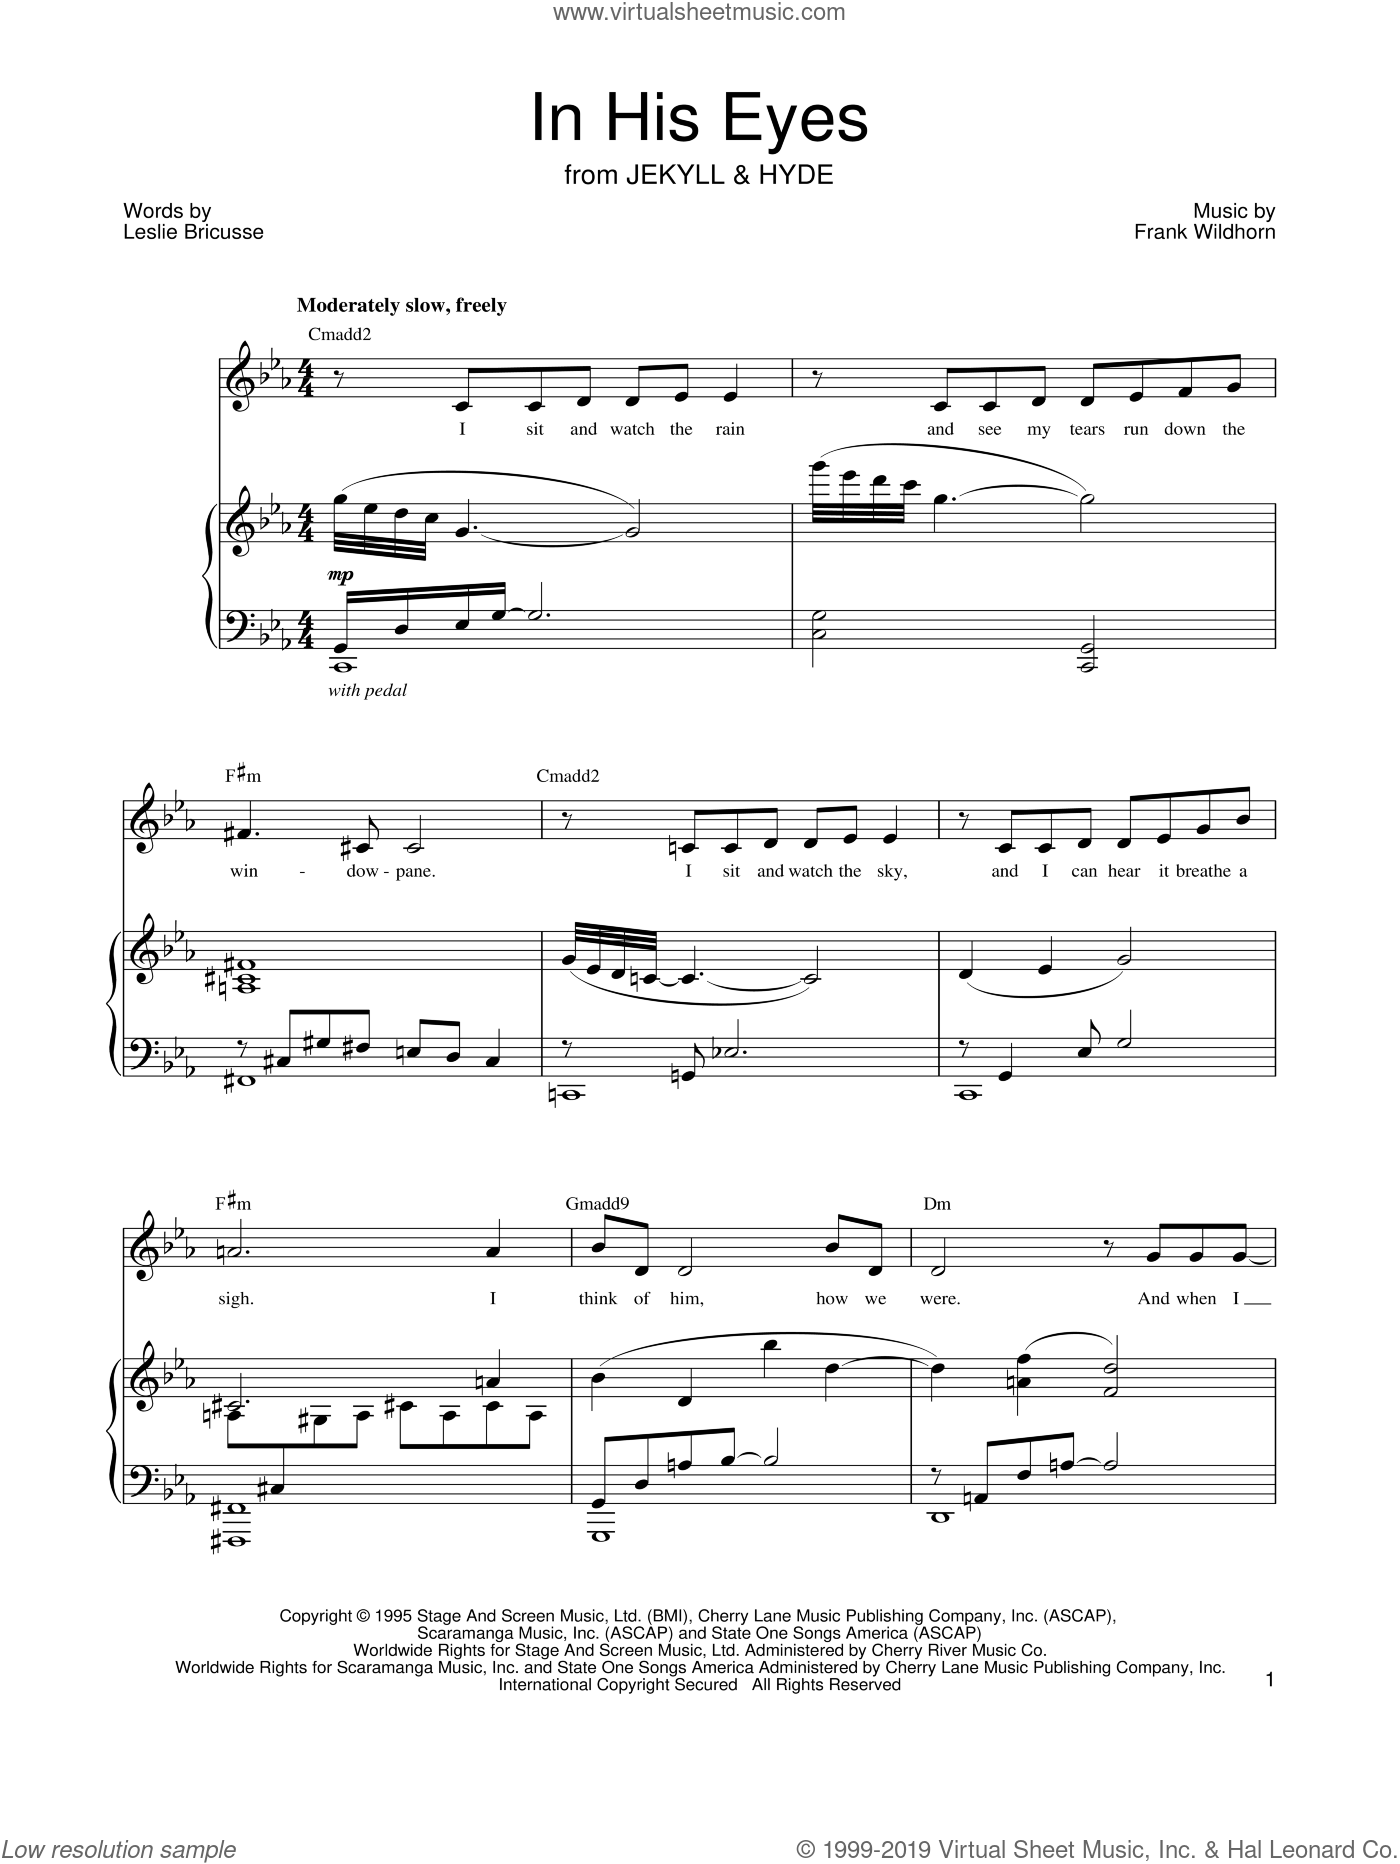 In His Eyes sheet music for voice and piano by Leslie Bricusse, Jekyll & Hyde (Musical) and Frank Wildhorn, intermediate skill level